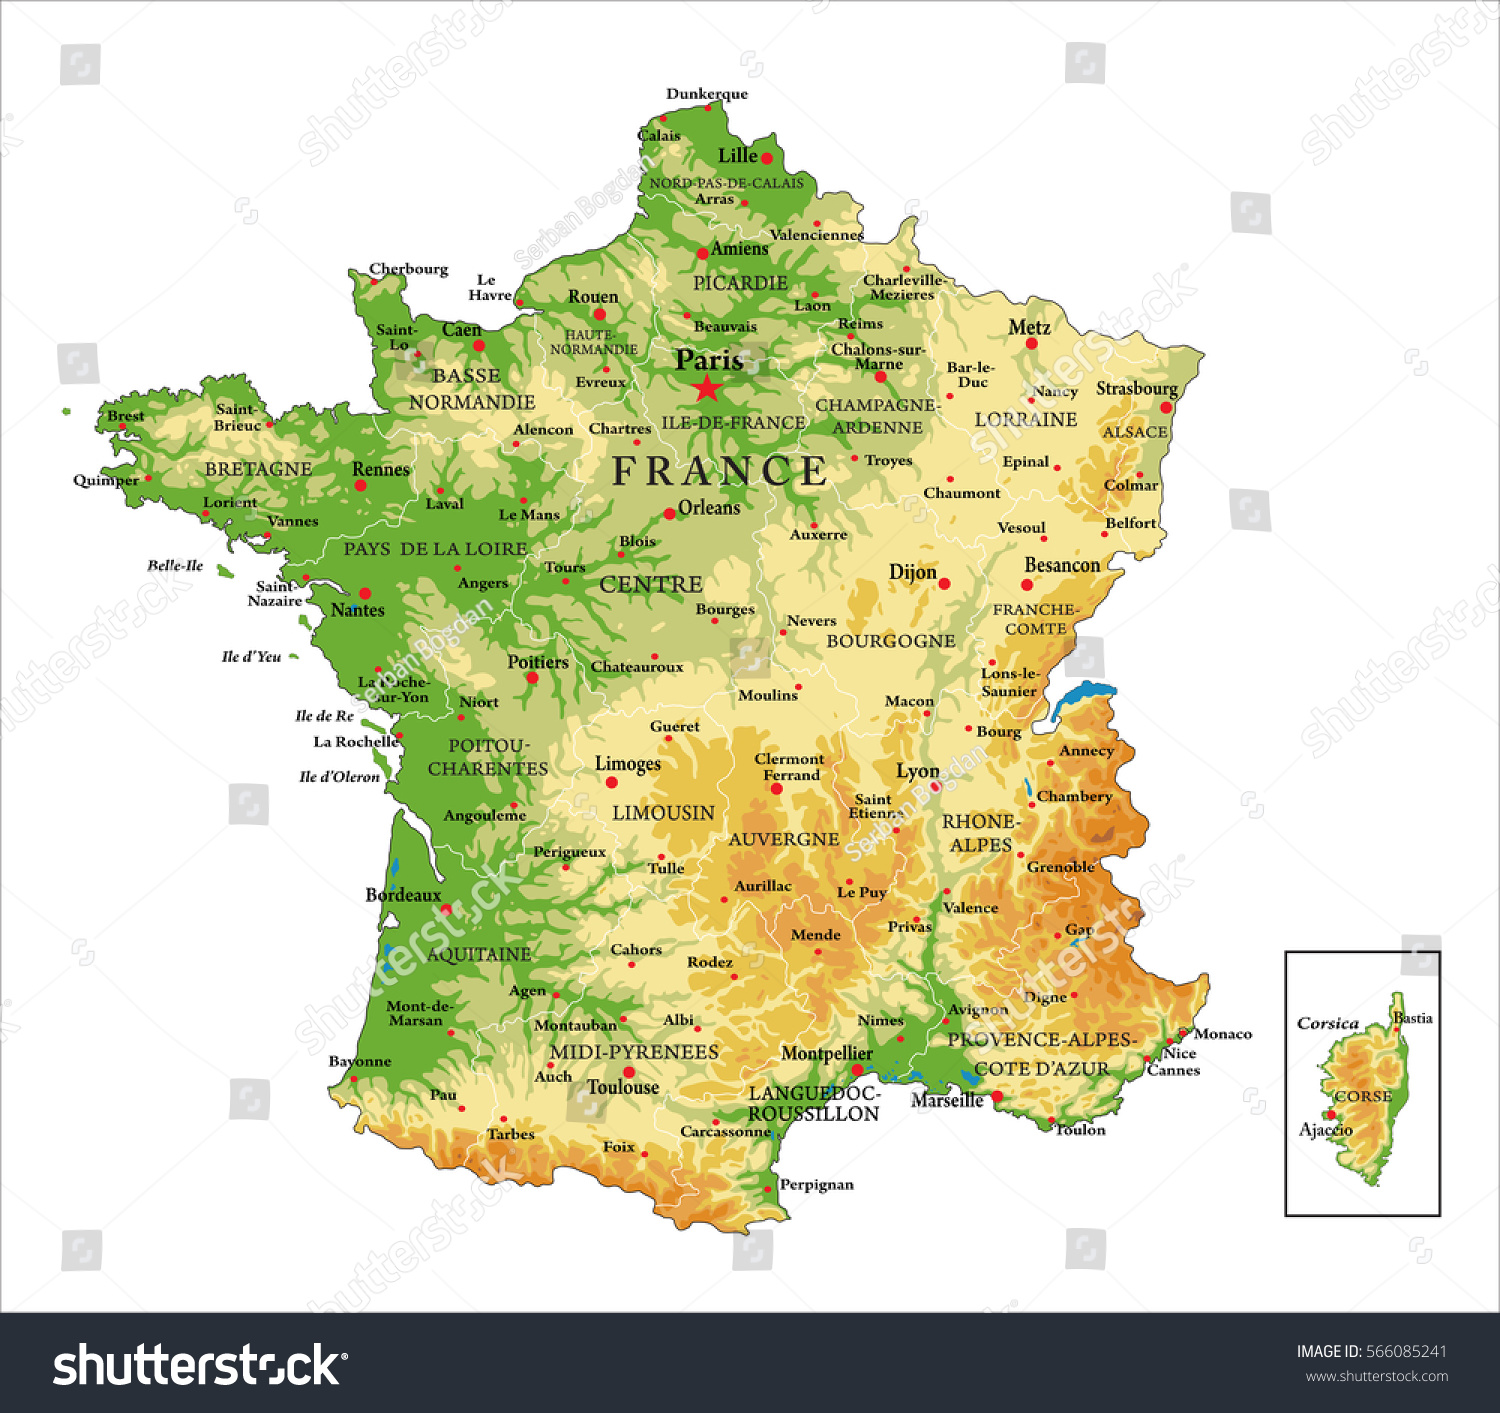 Evreux France Map.Francephysical Map Stock Vector Royalty Free 566085241 Shutterstock